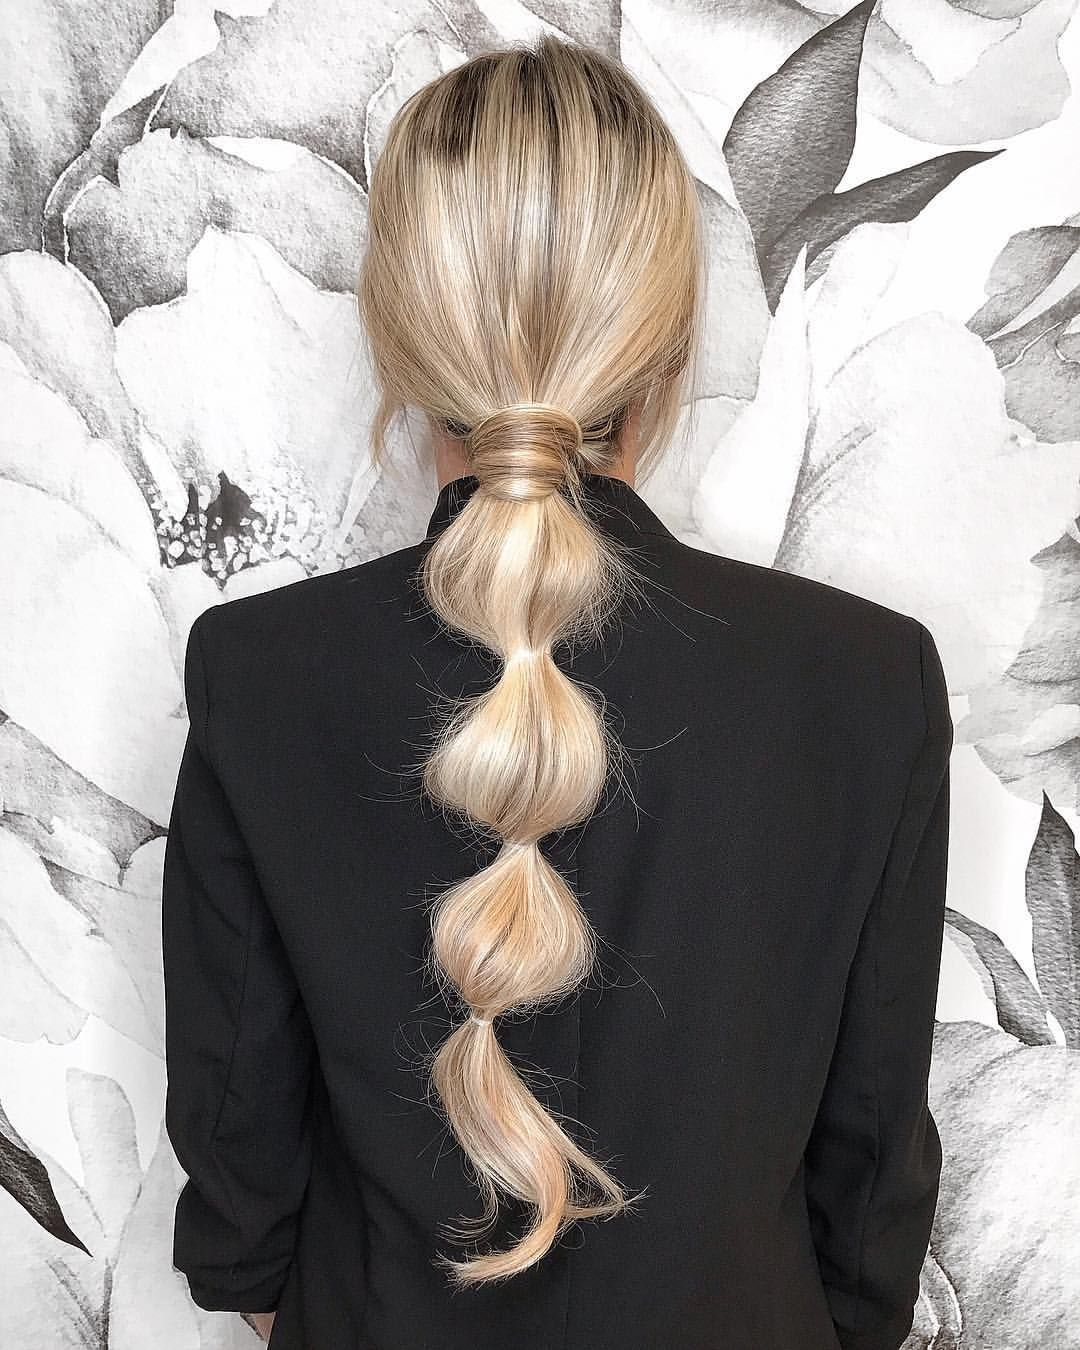 Wonderful Photos Love's In The Hair on Instagram